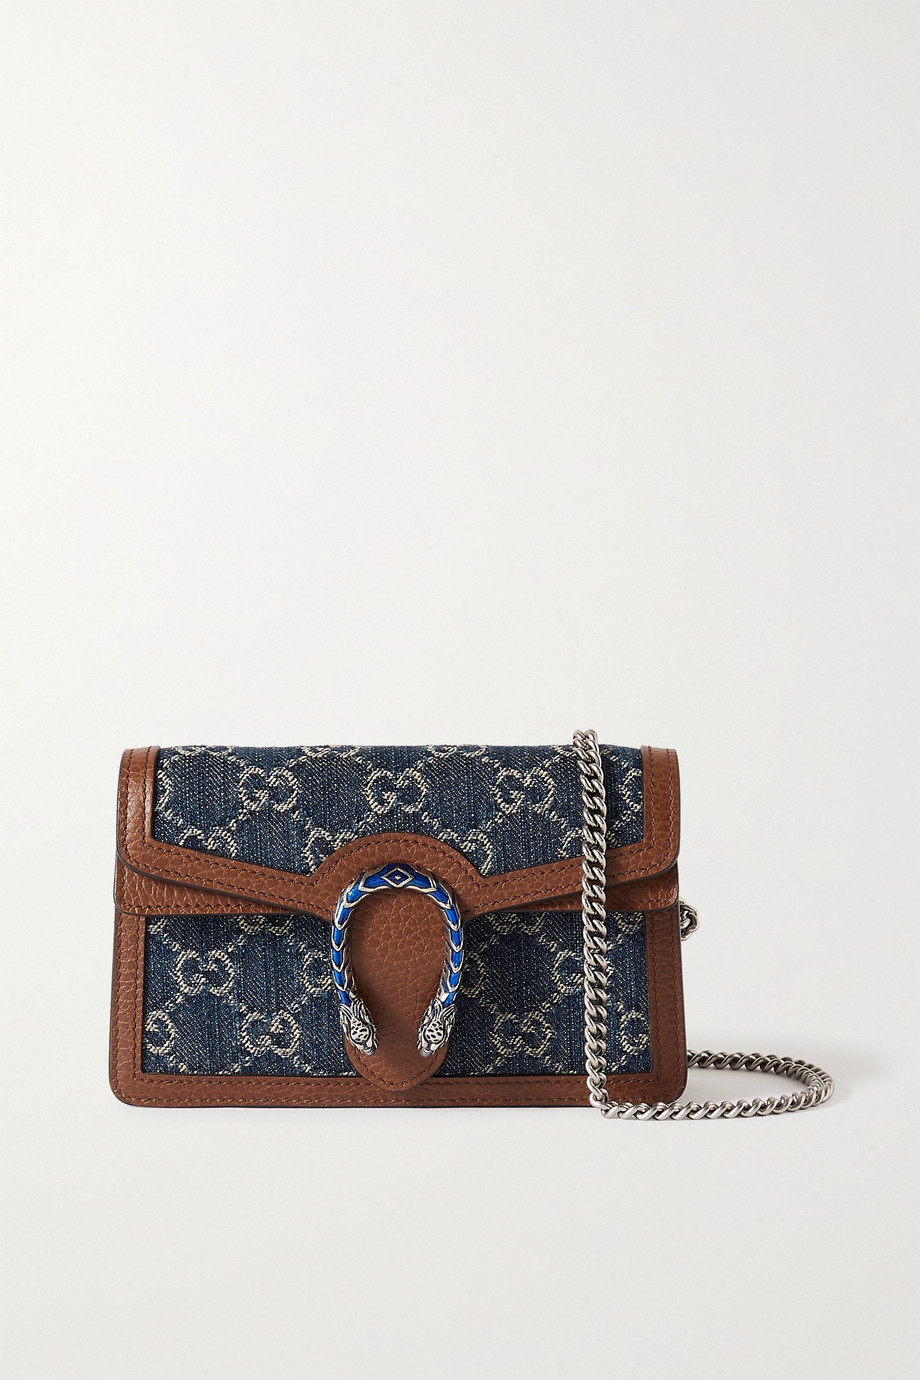 Gucci + NET SUSTAIN Dionysus super mini leather and organic denim-jacquard shoulder bag